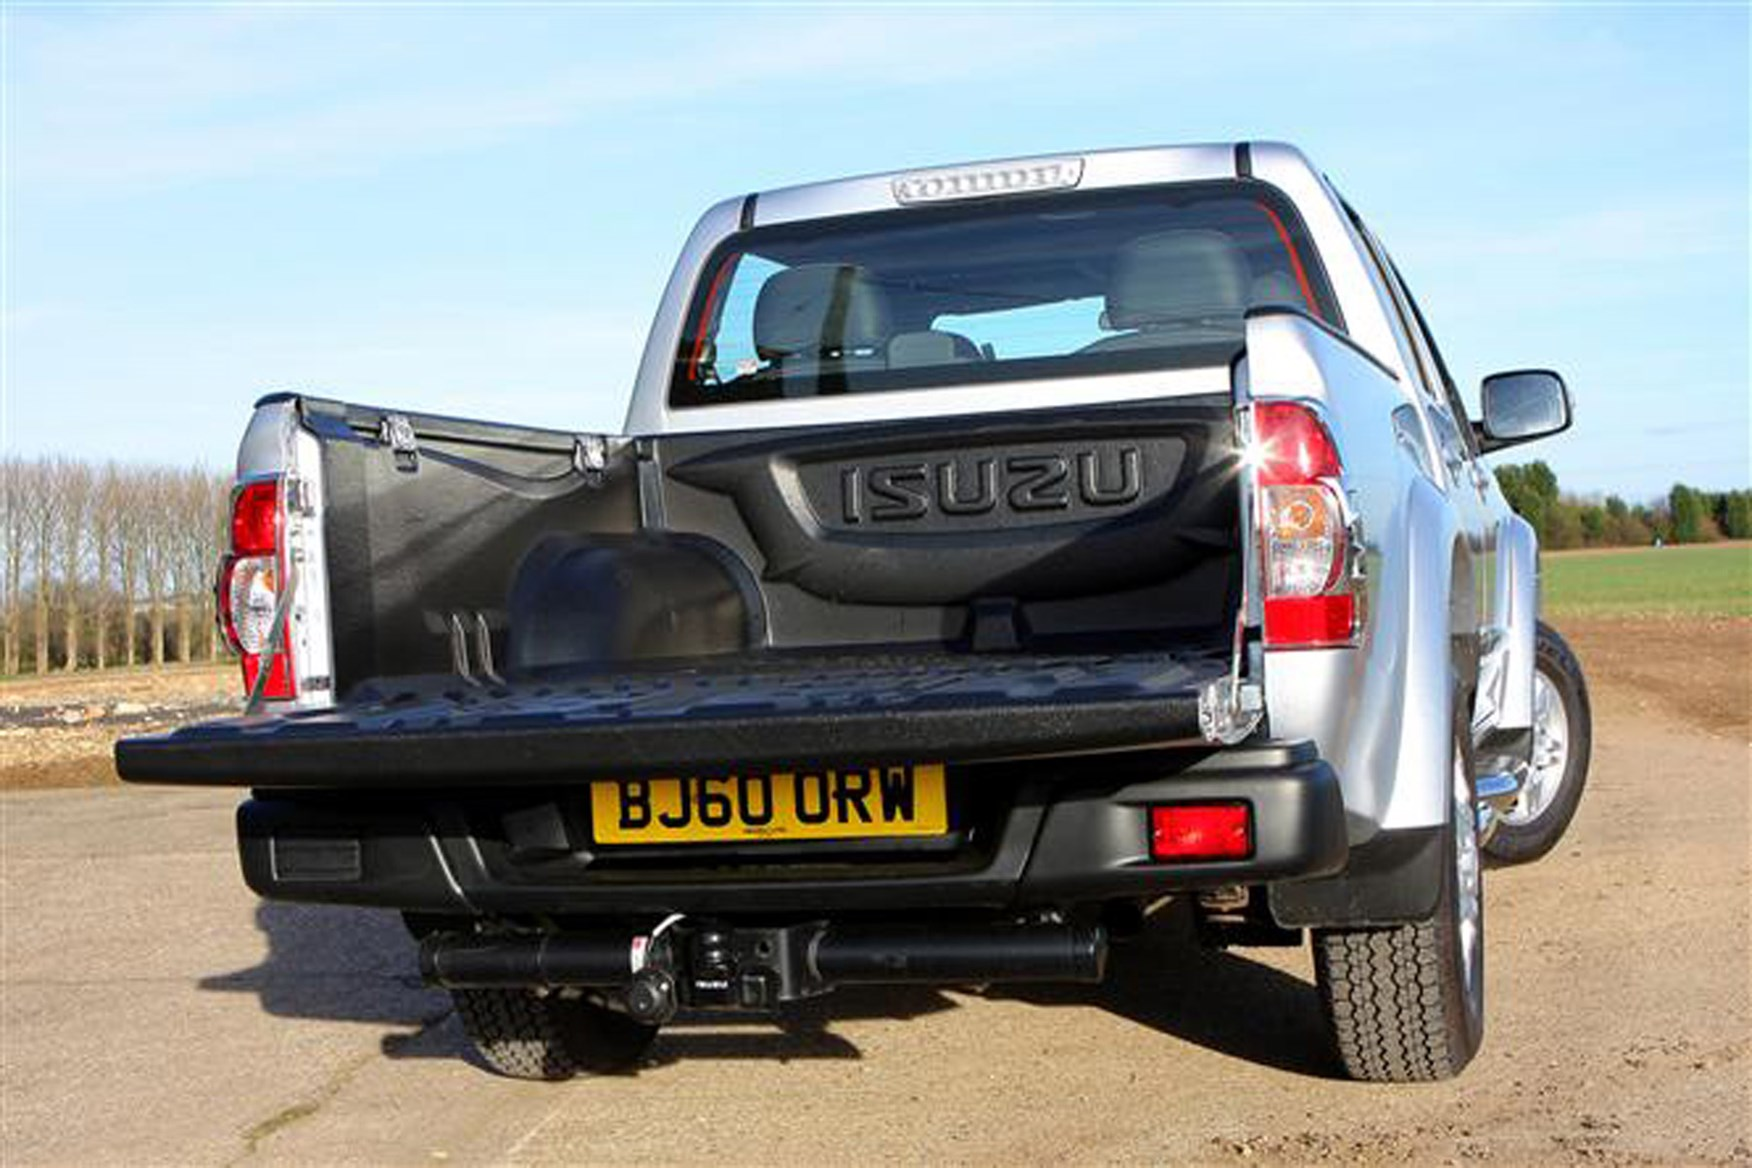 Isuzu Rodeo review on Parkers Vans - load area dimensions